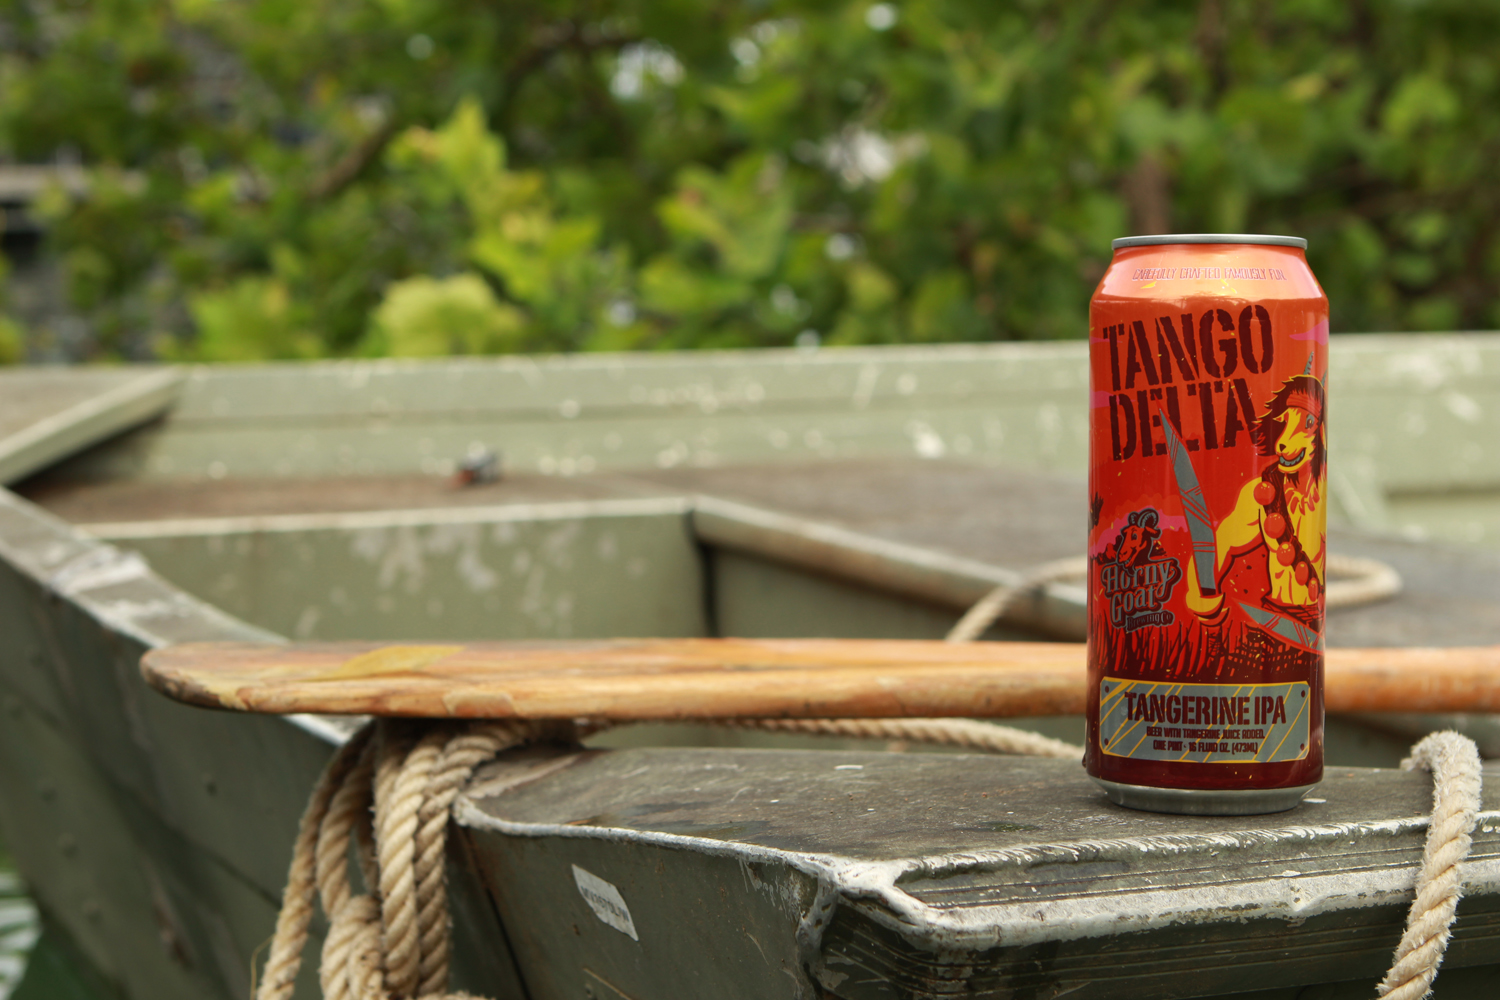 Tango Delta is a tangerine IPA summer fruit beer.